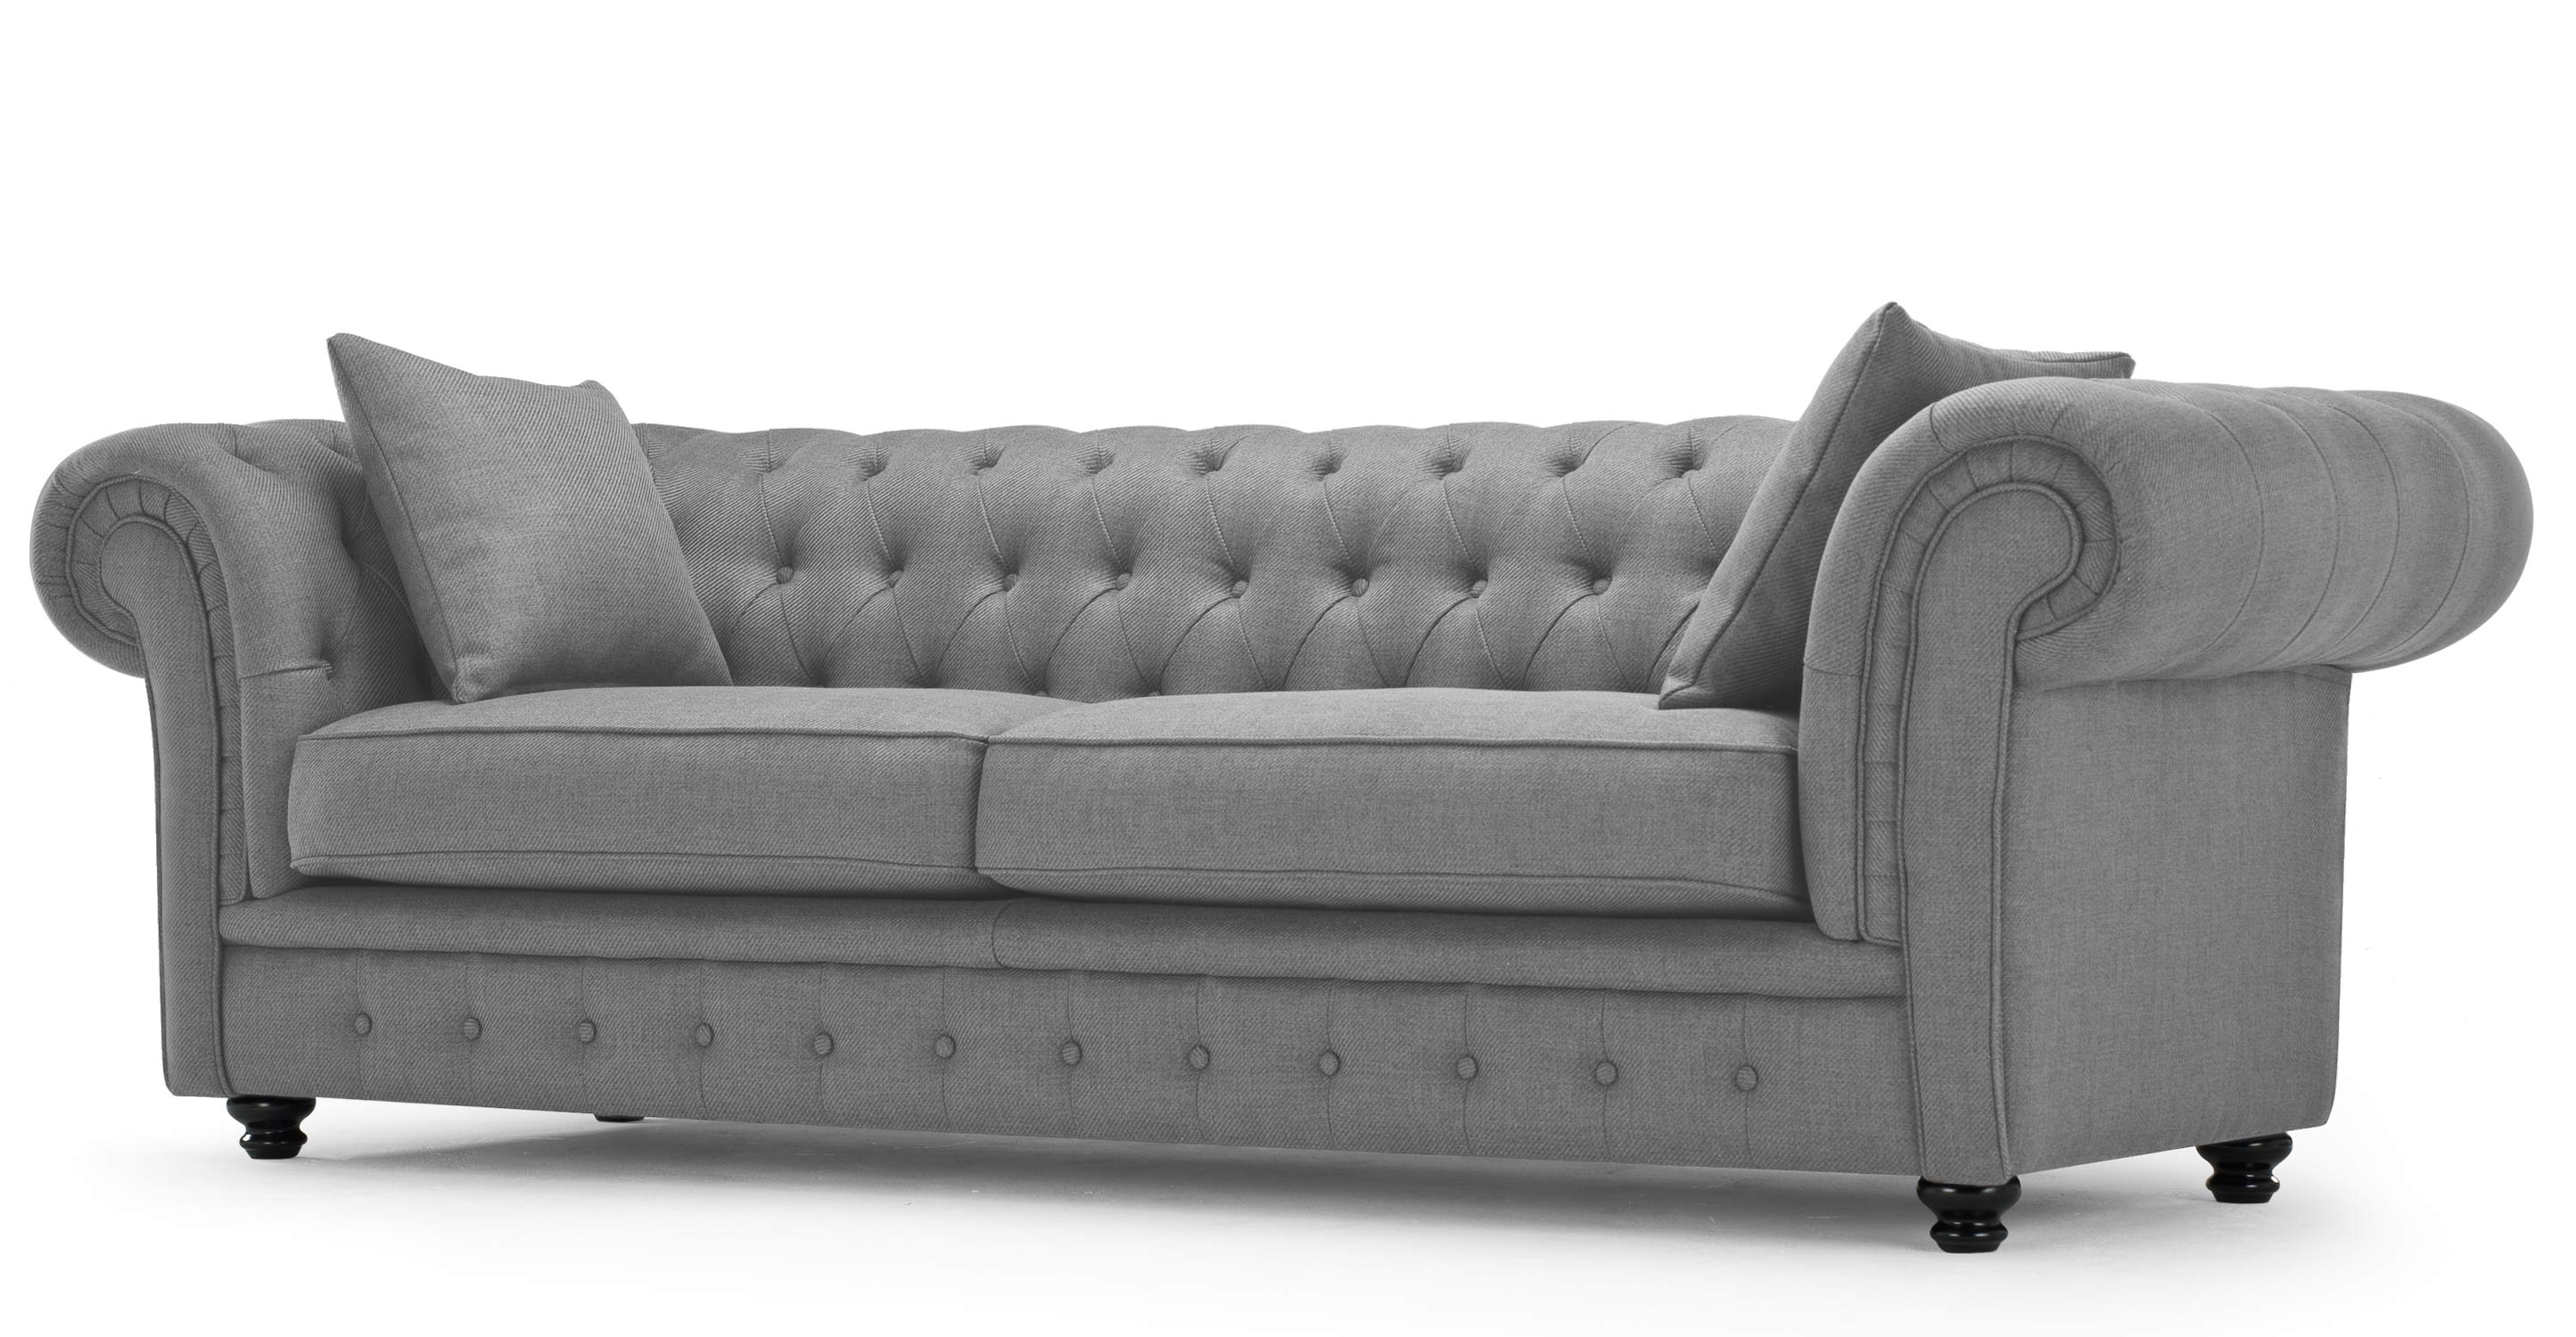 Branagh 3 Seater Grey Chesterfield Sofa Chesterfield Sofa Pearl With Regard To Chesterfield Sofa And Chair (Image 3 of 15)